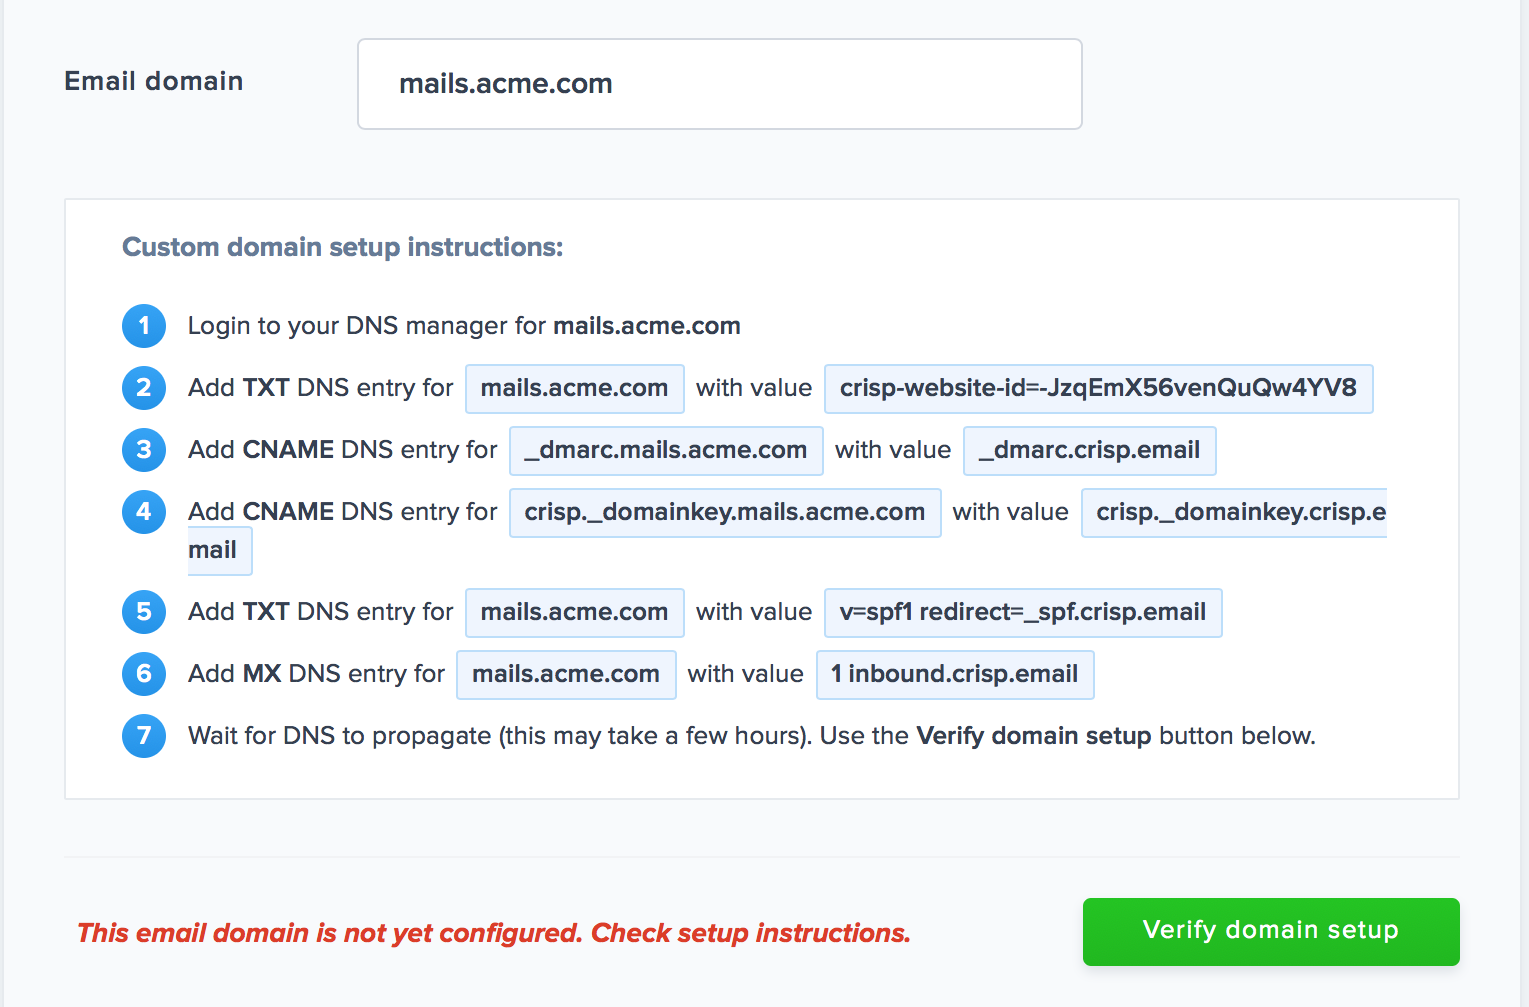 DNS records are generated, make sure to add them all in your DNS manager